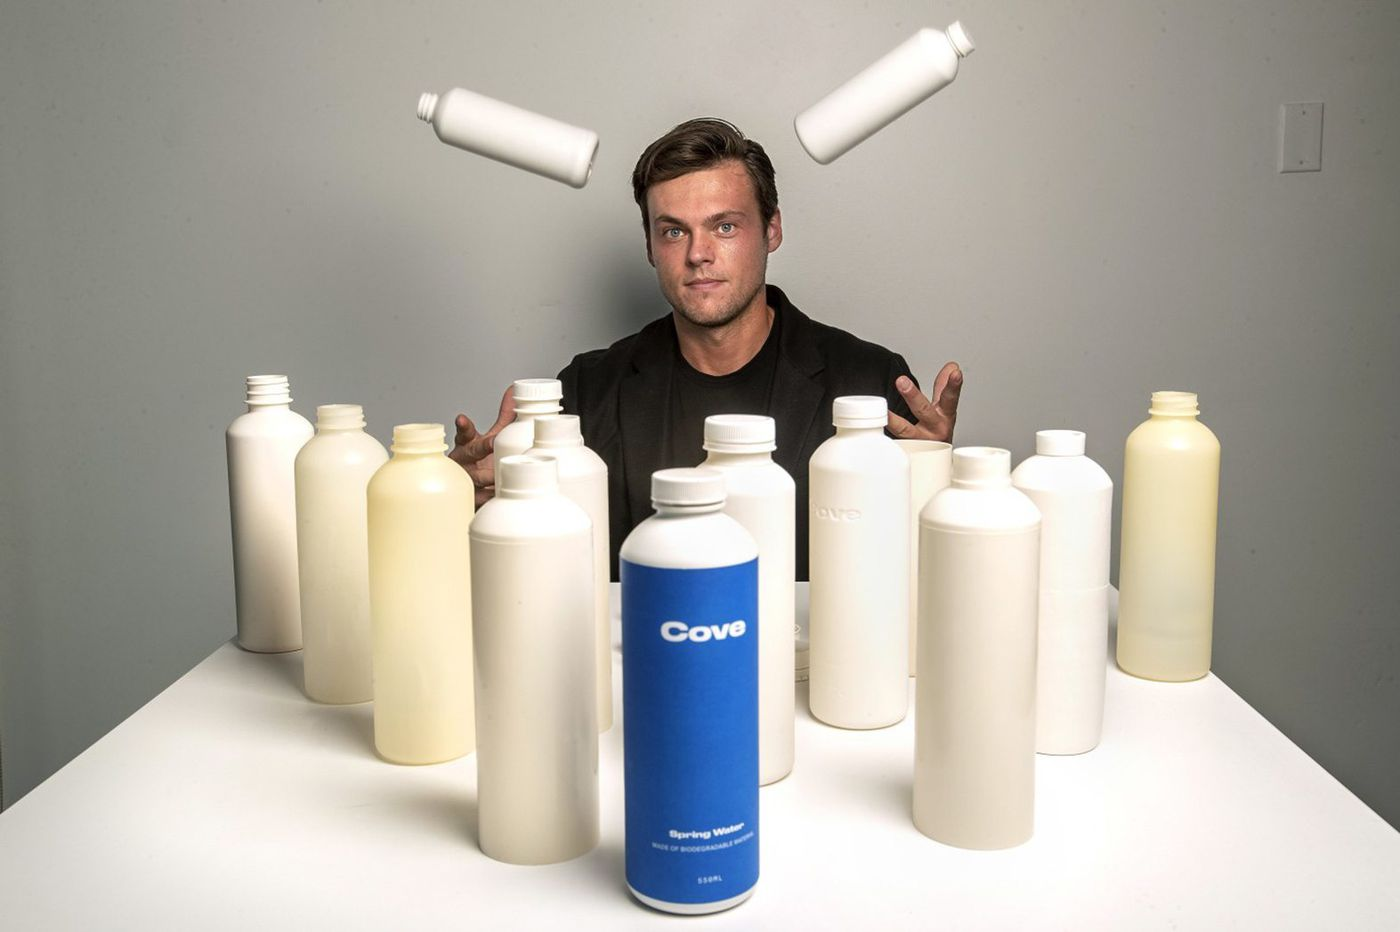 This California firm promises a guilt-free plastic water bottle that breaks down: It's not easy